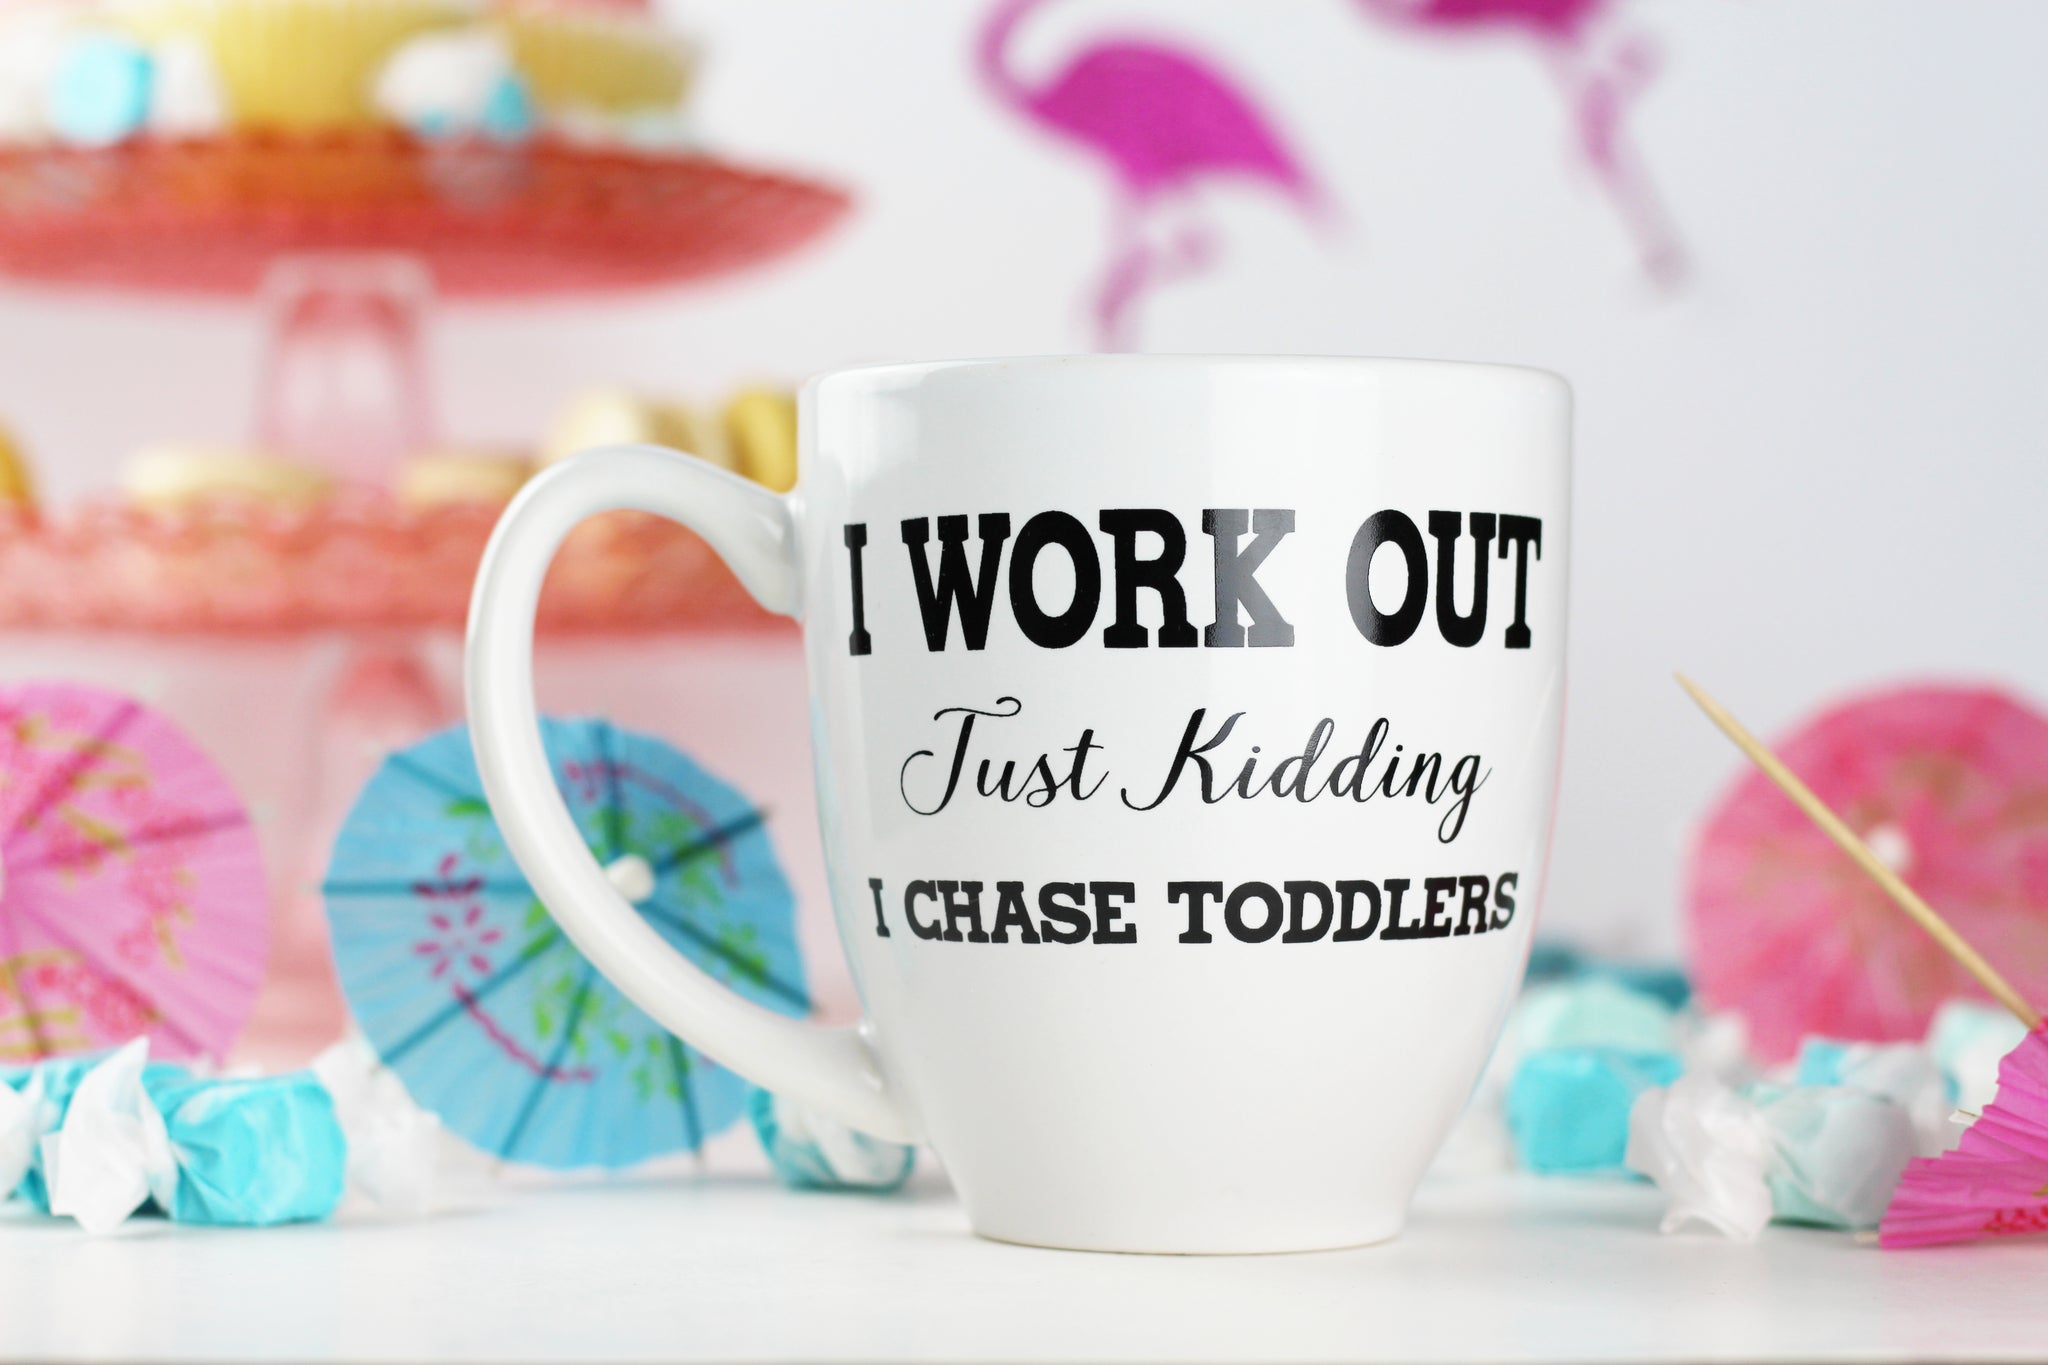 I work out, Just Kidding, I chase toddlers